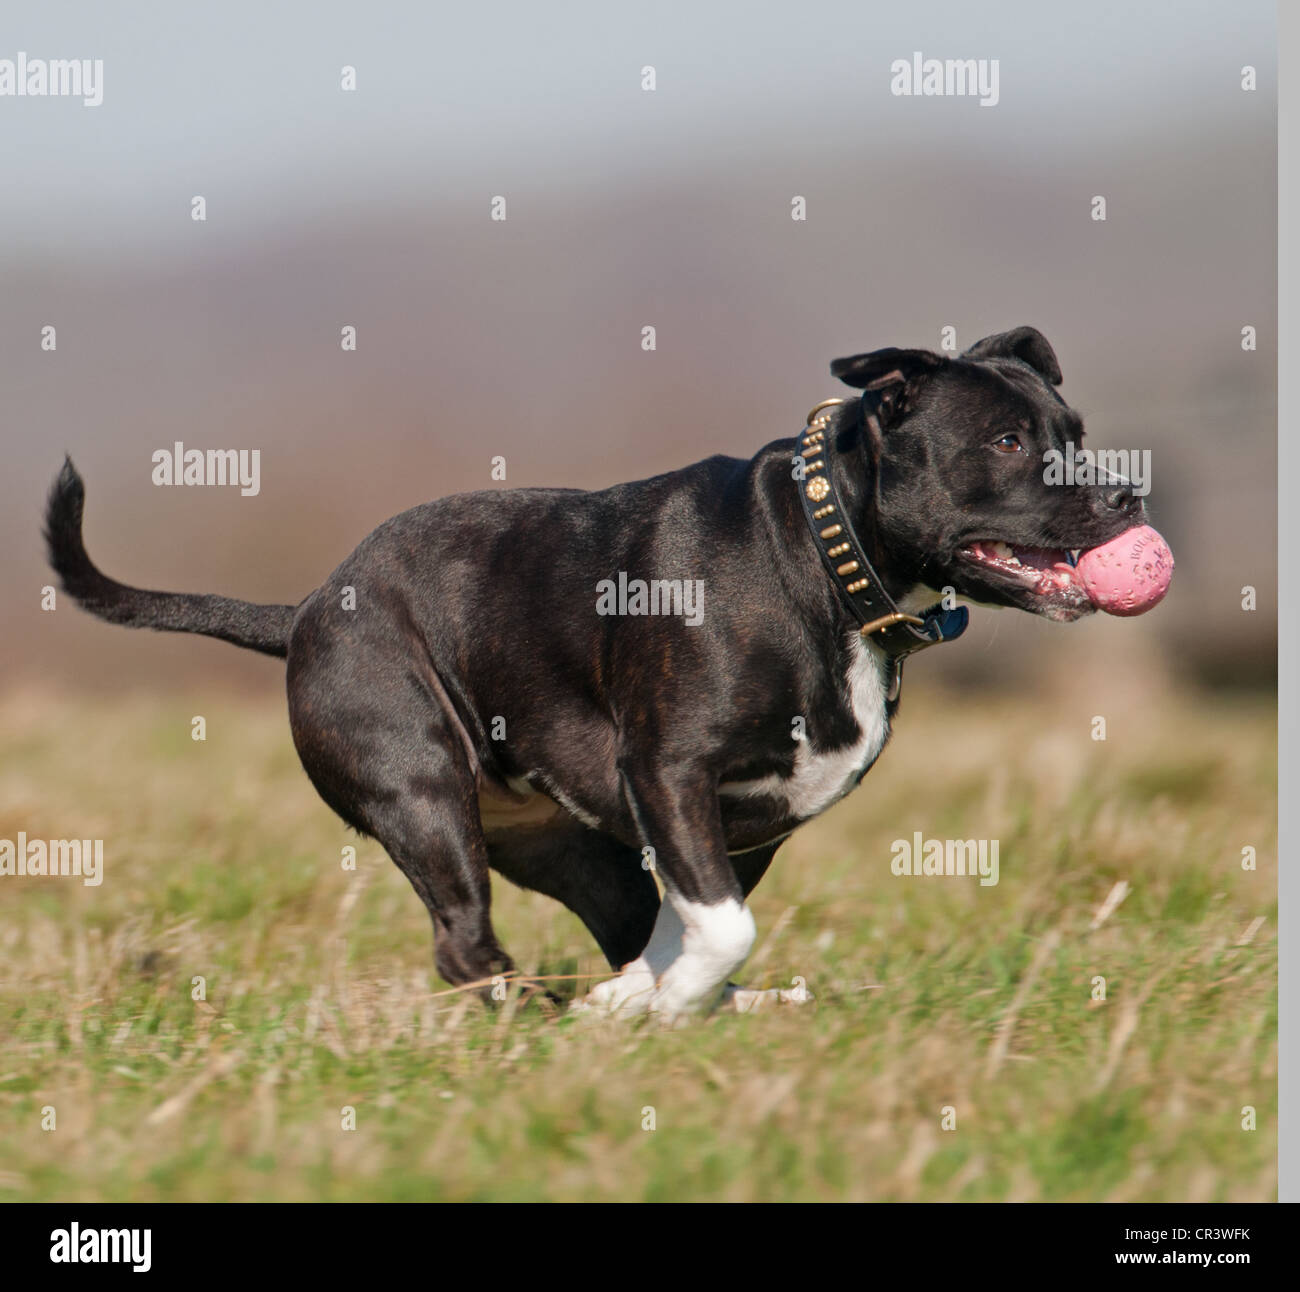 STAFFORDSHIRE BULL TERRIER DOG RUNNING WITH BALL IN ITS MOUTH.UK - Stock Image